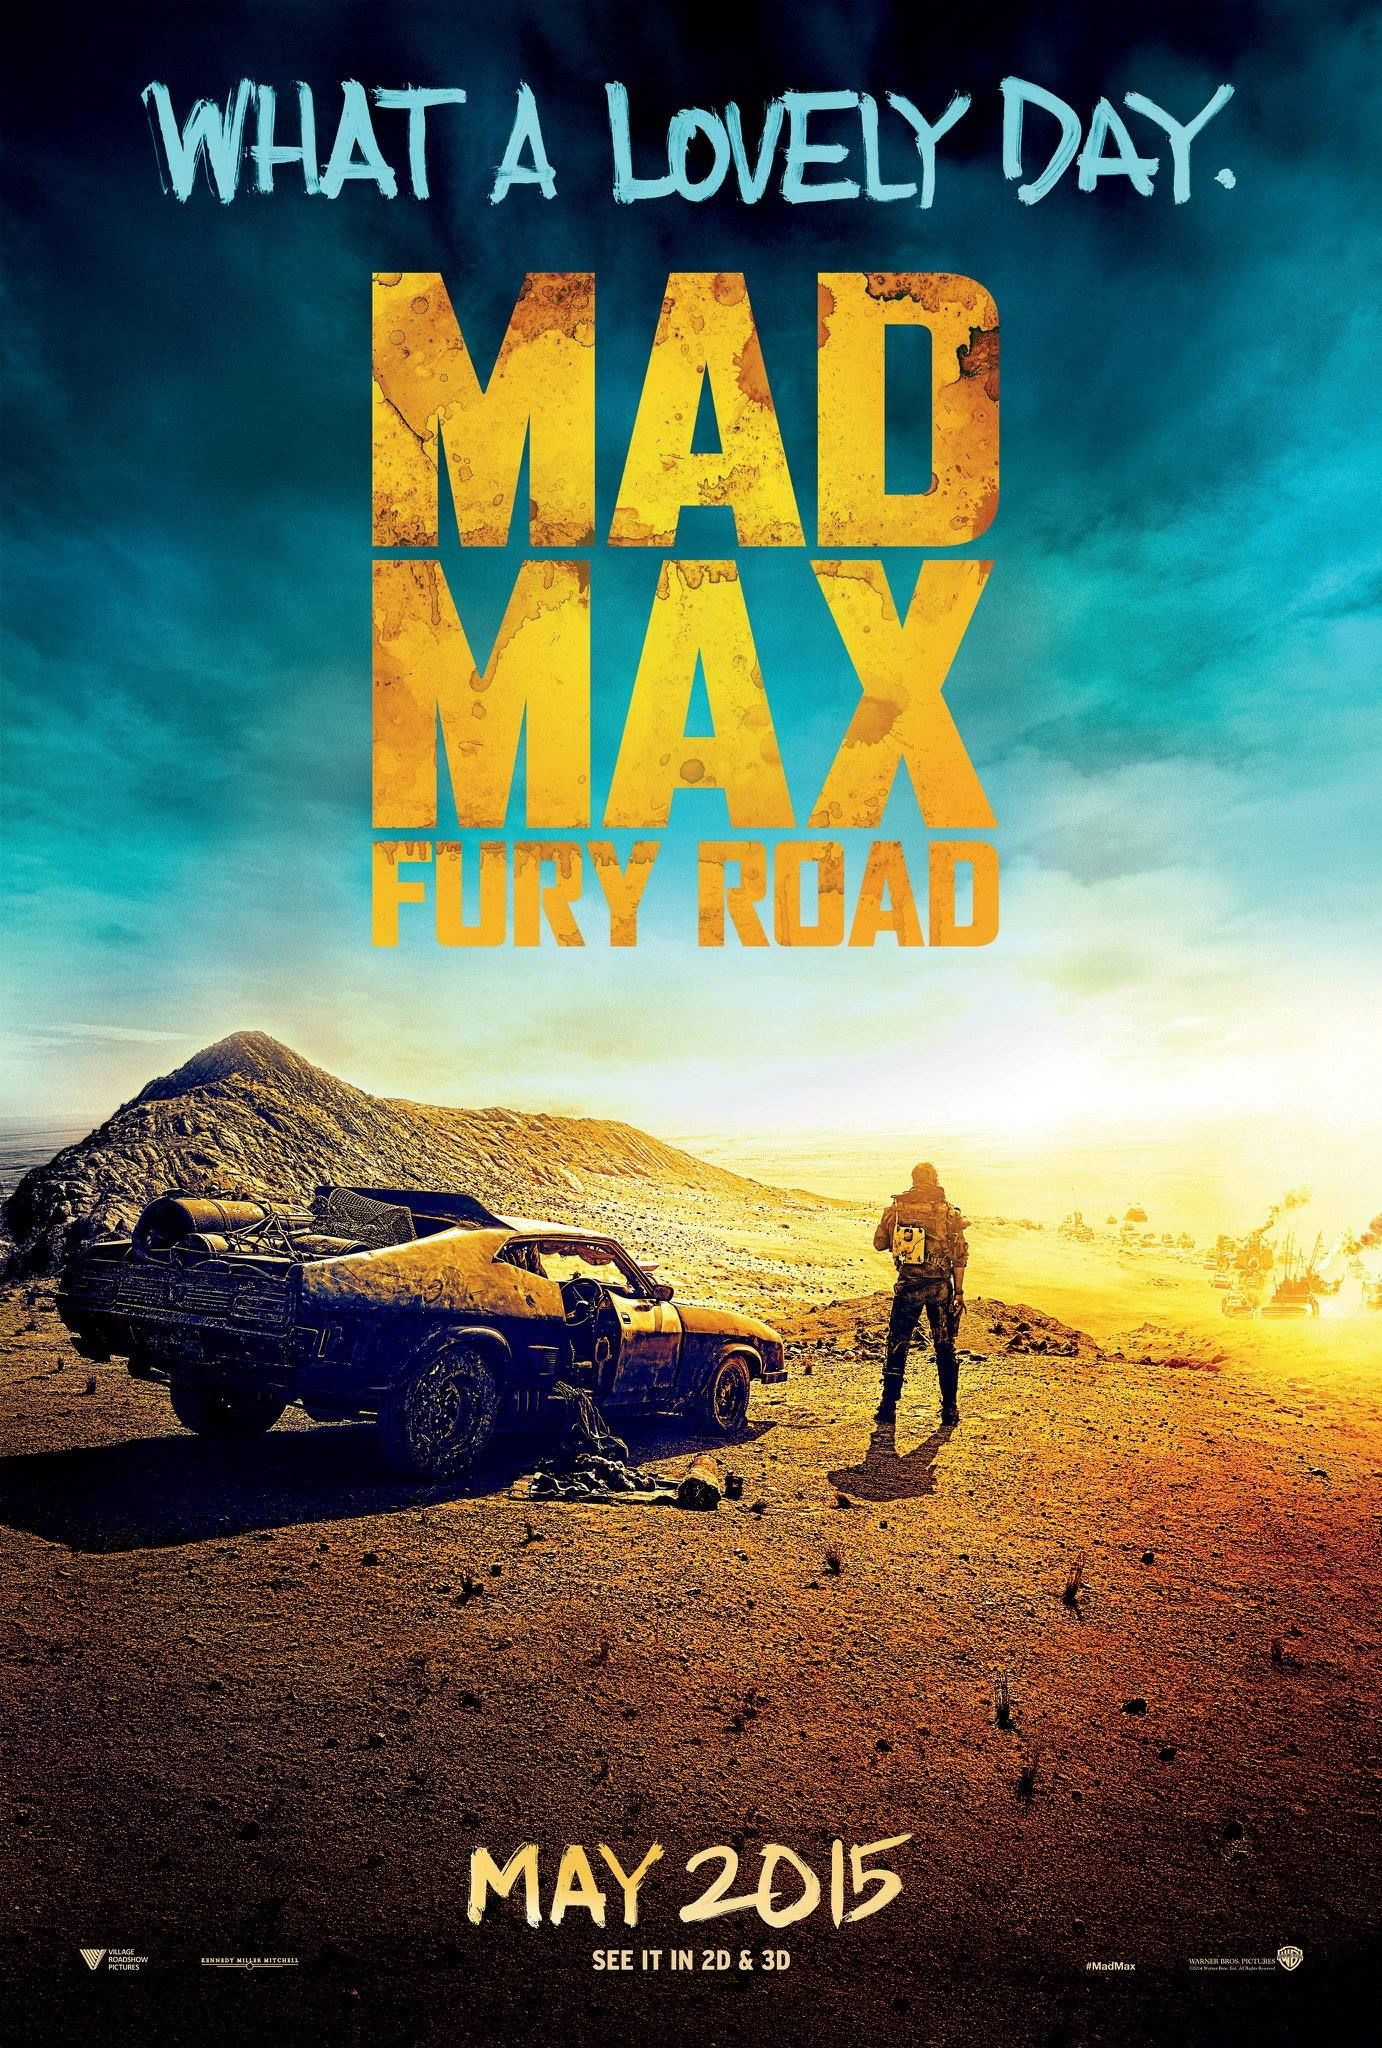 Mad Max: Fury Road by George Miller